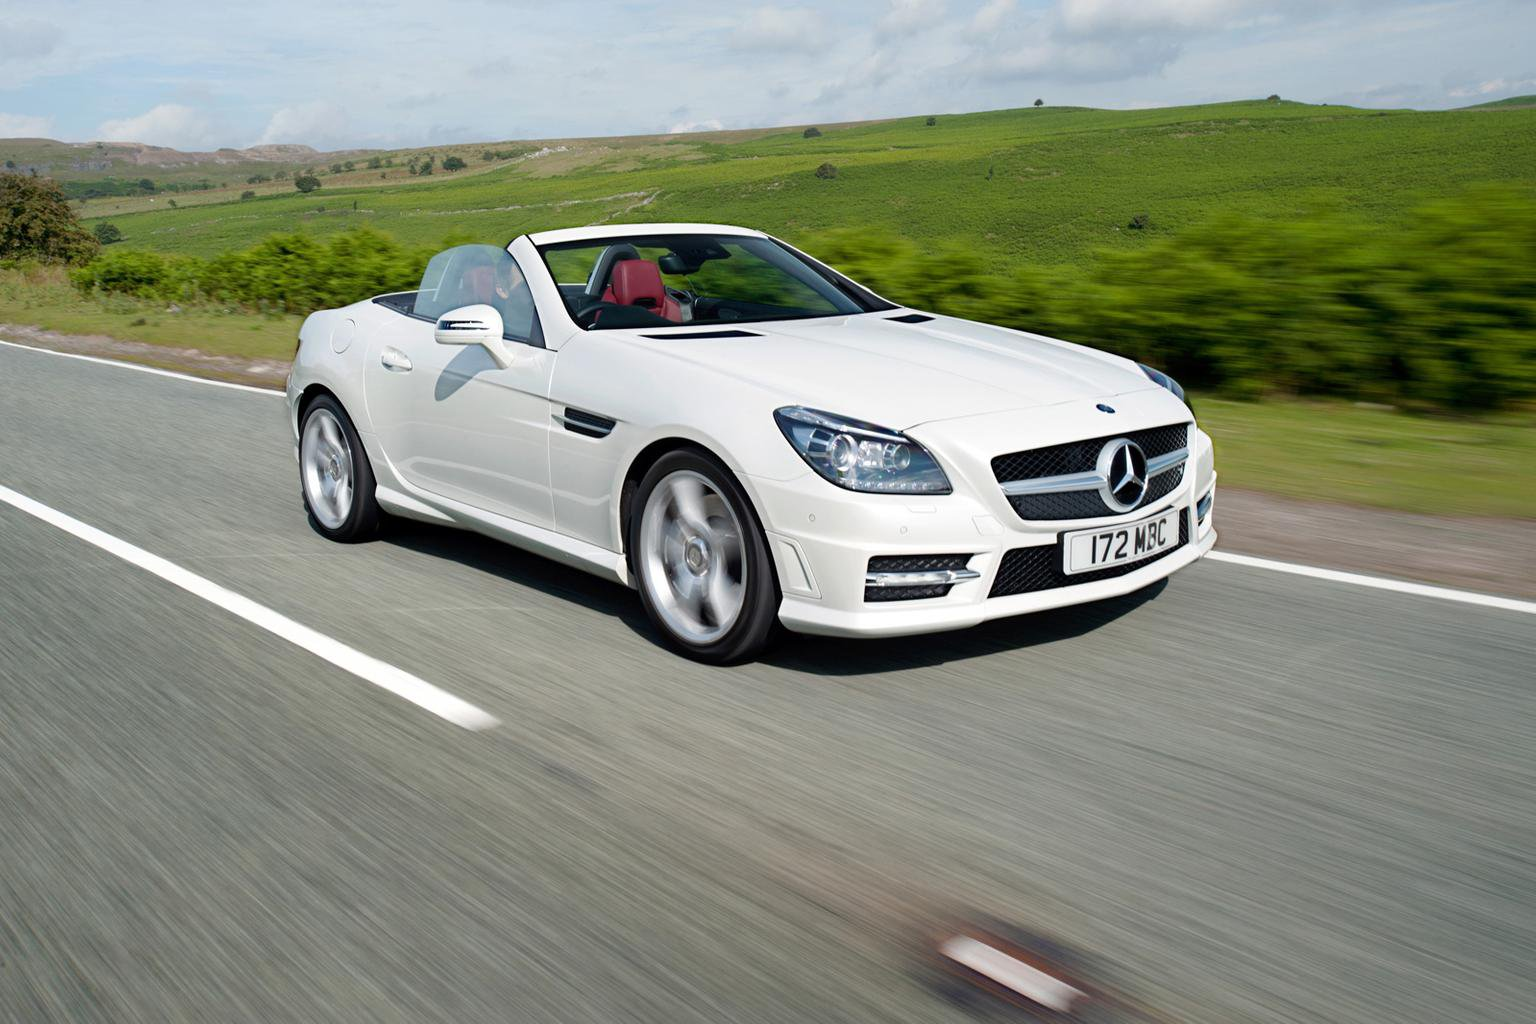 Deal of the day: Mercedes Benz SLK